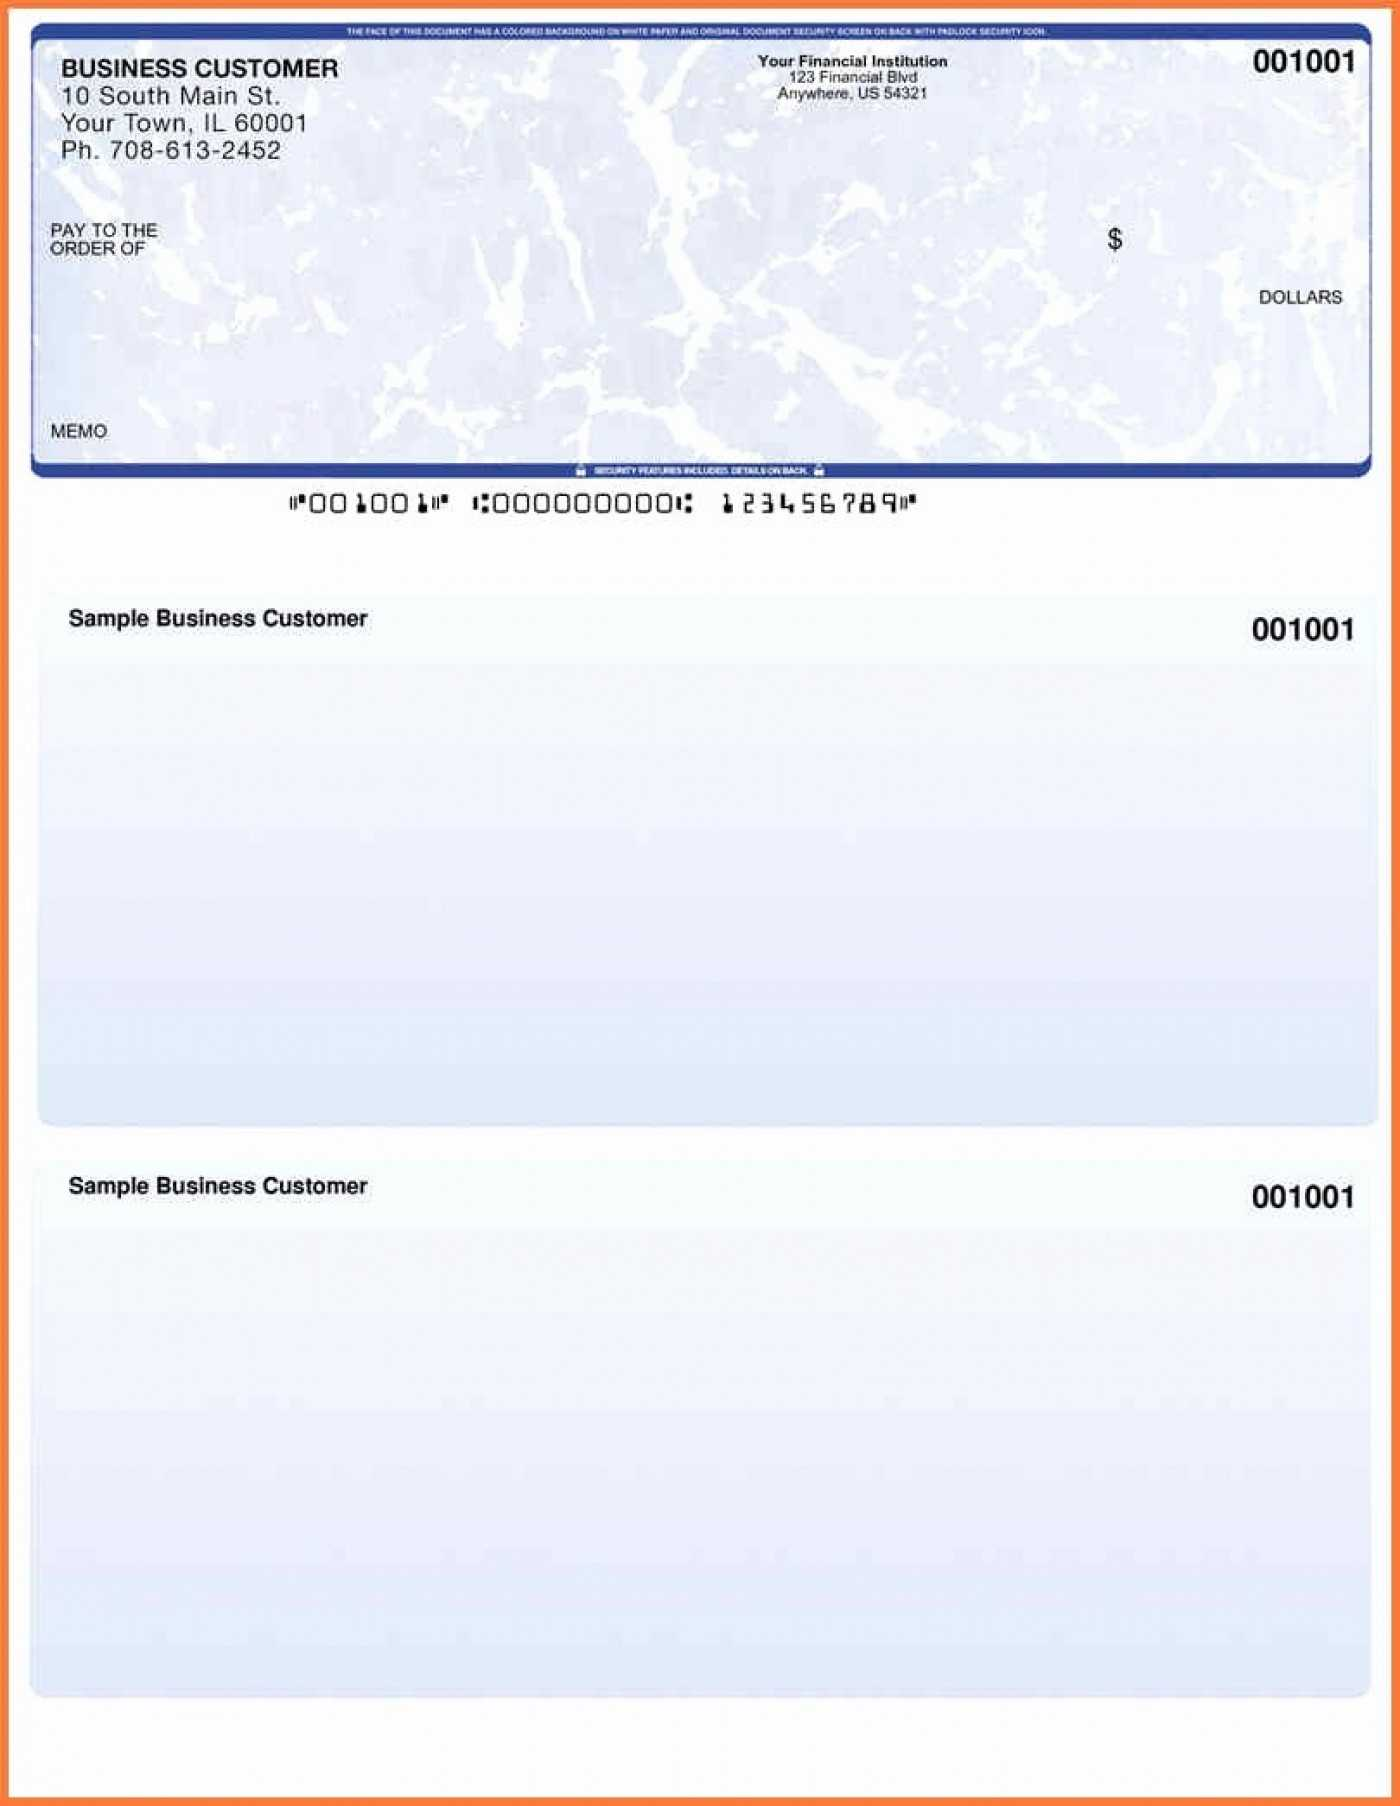 002 Microsoft Word Business Check Template Blank Ideas Pertaining To Blank Business Check Template